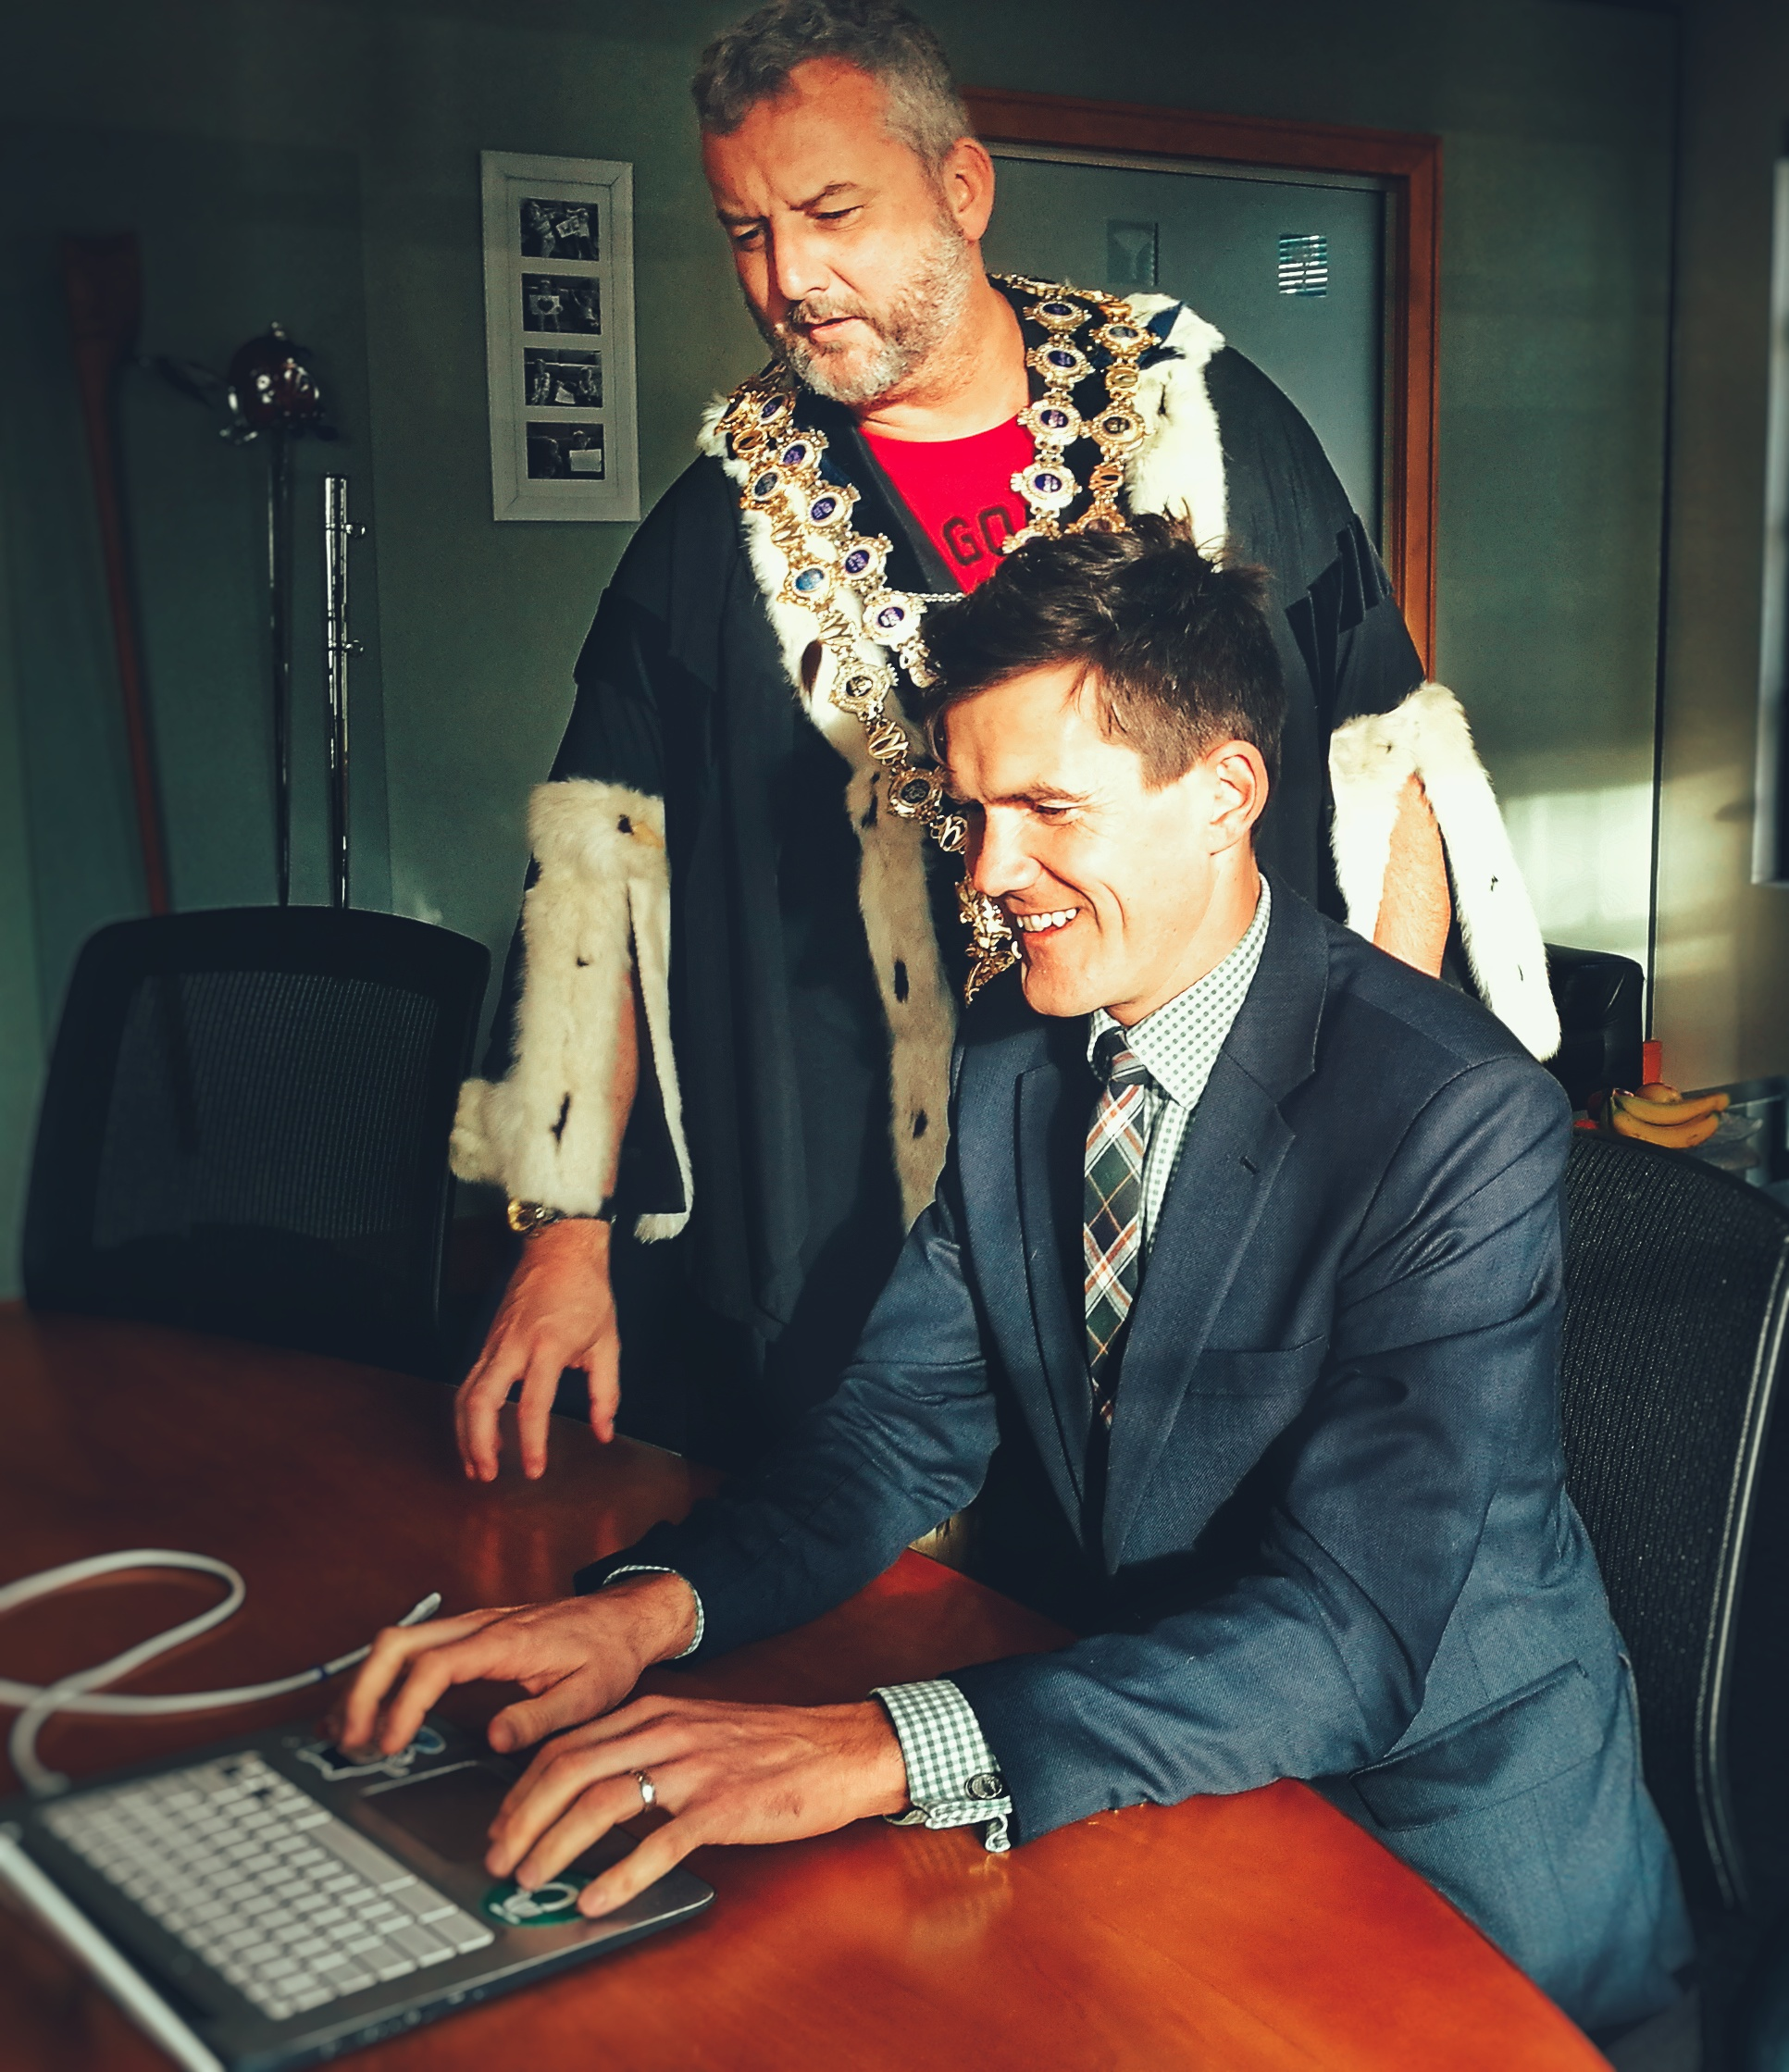 Mike in the Wellington City Mayoral robes and chains with the 35th Mayor, Justin Lester